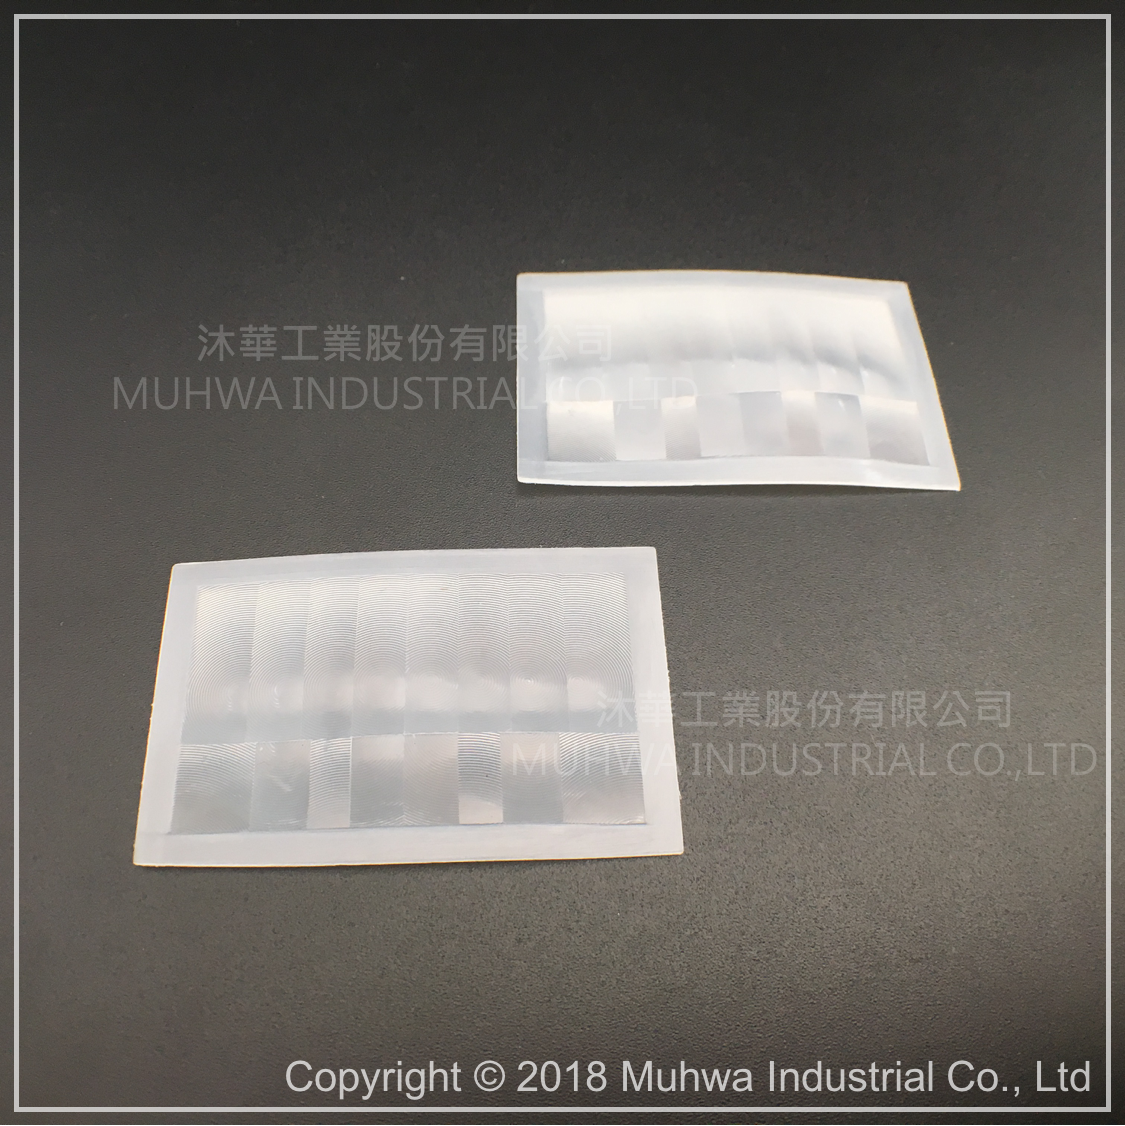 High quality Plastic Fresnel Lens Quotes,China Plastic Fresnel Lens Factory,Plastic Fresnel Lens Purchasing